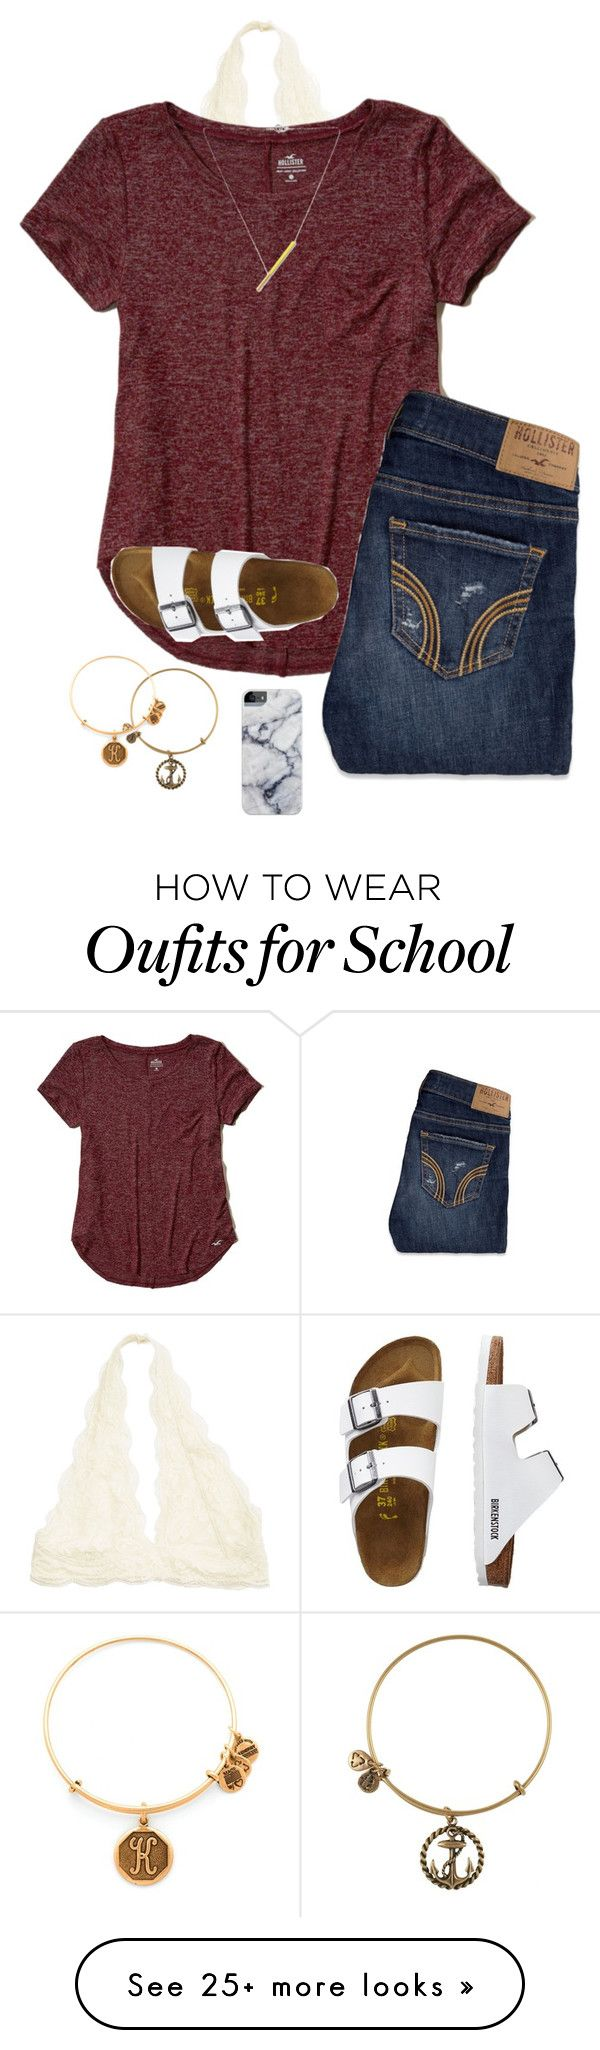 """School day"" by eadurbala08 on Polyvore featuring Hollister Co., TravelSmith, Alex and Ani and FAUX/real"